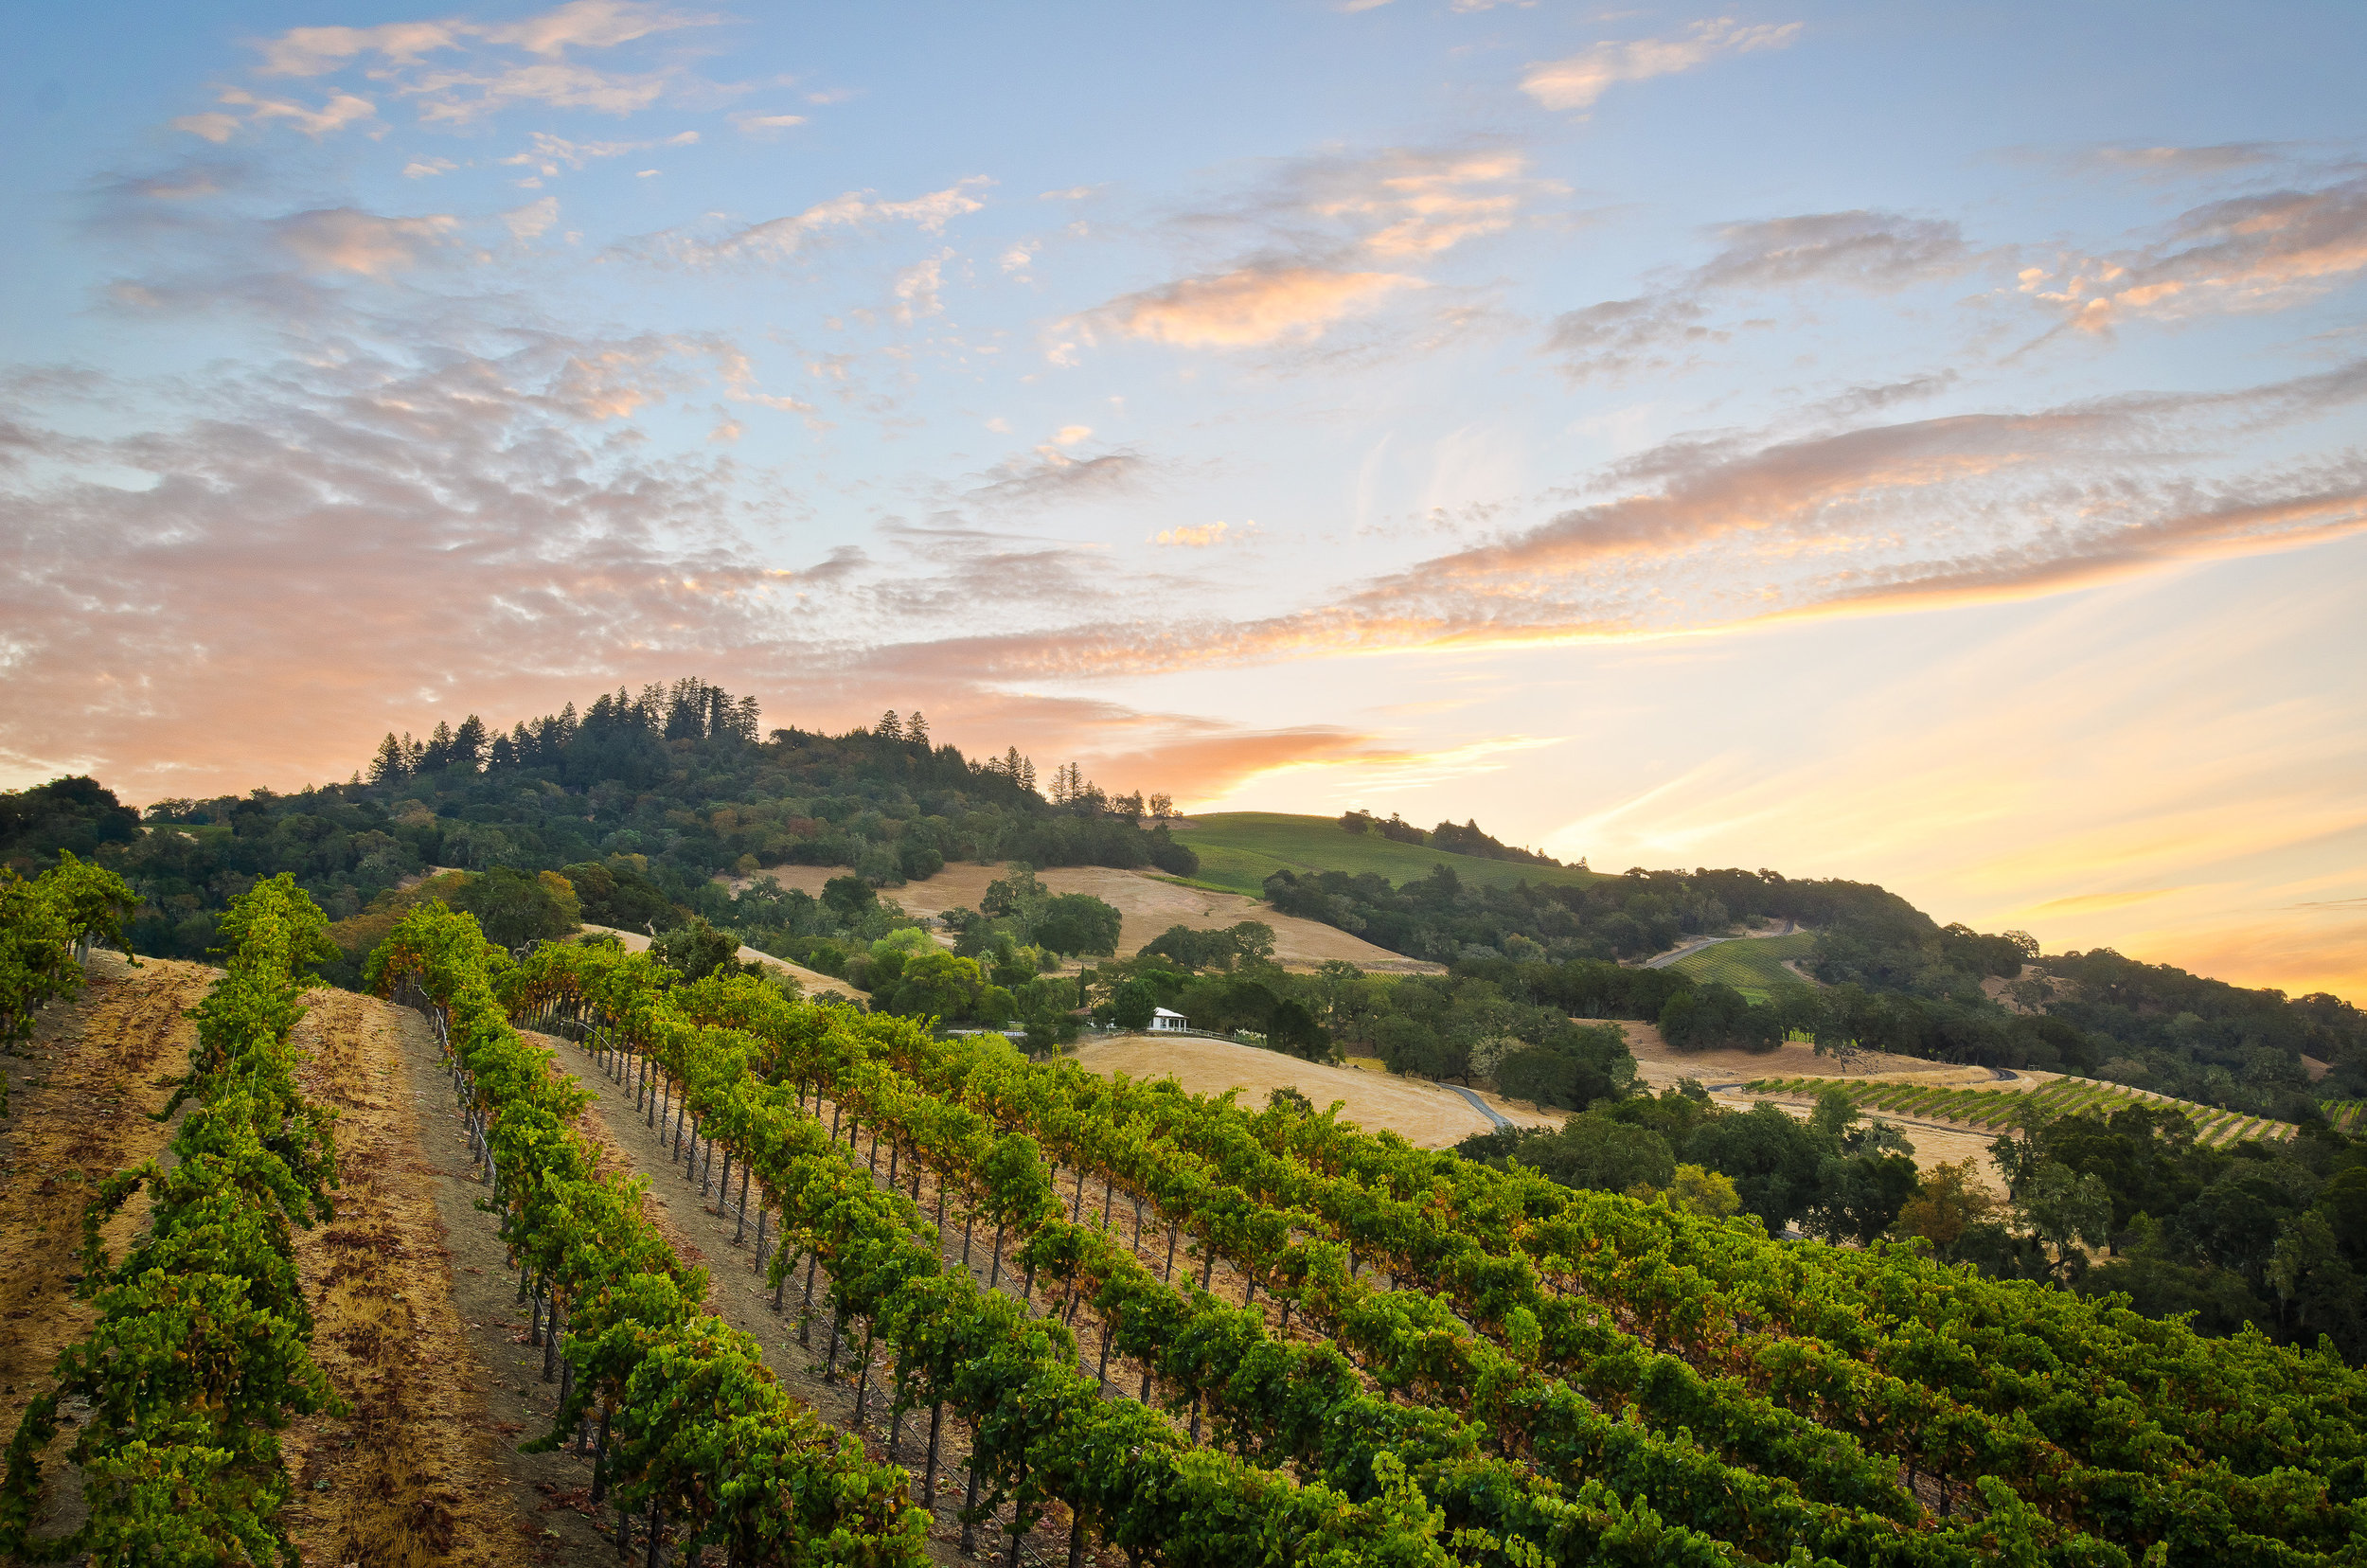 Wine country - A study in Landscape, Architecture and Lifestyle.